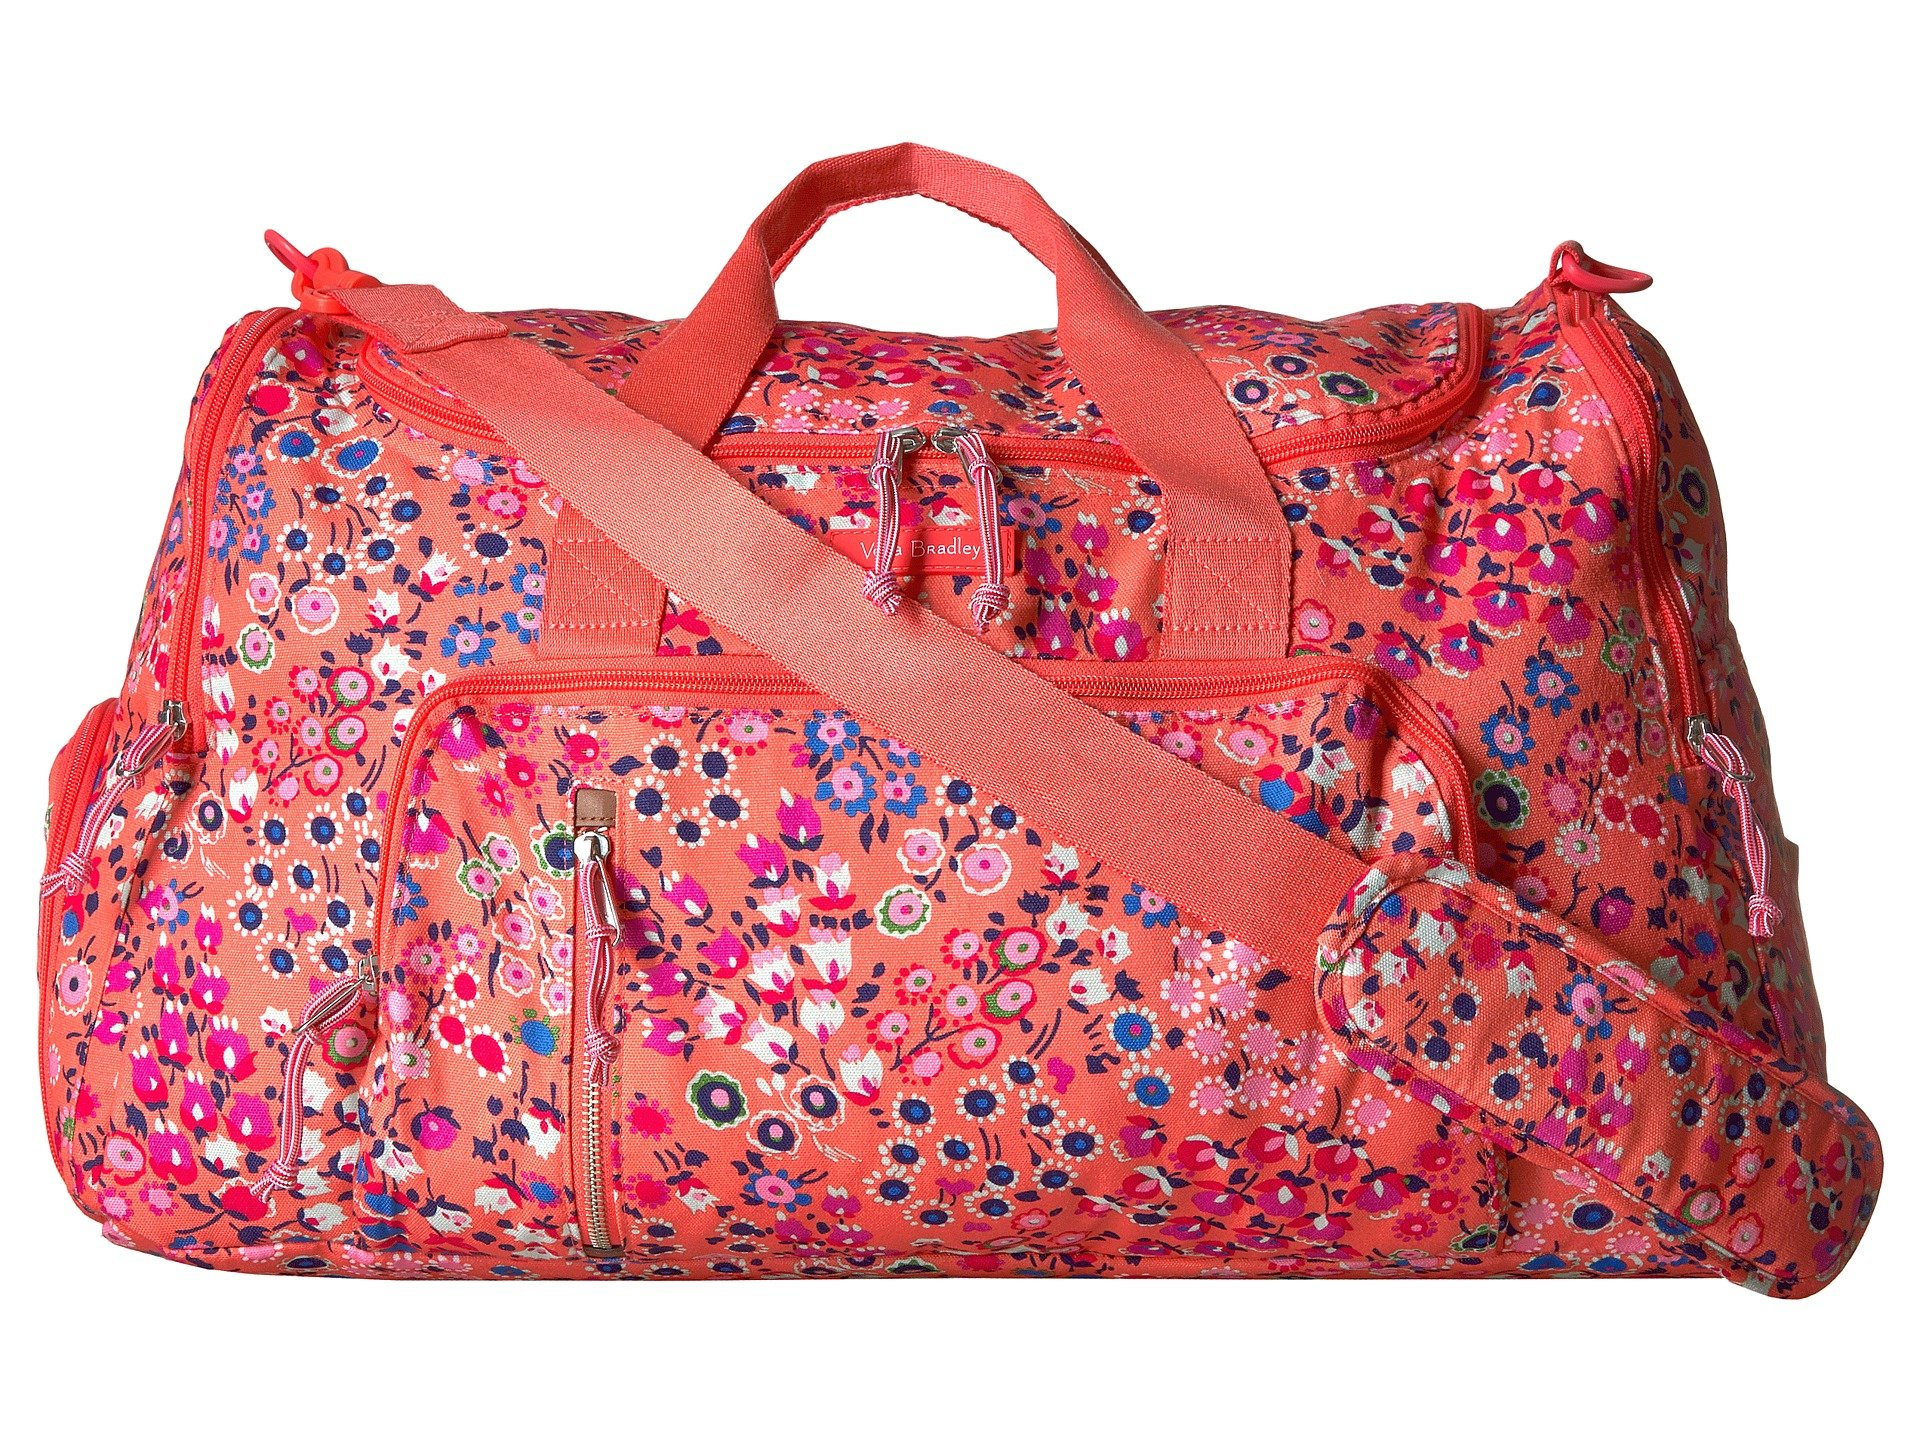 Bolso de Lona para Mujer Vera Bradley Lighten Up Ultimate Gym Bag  + Vera Bradley en VeoyCompro.net